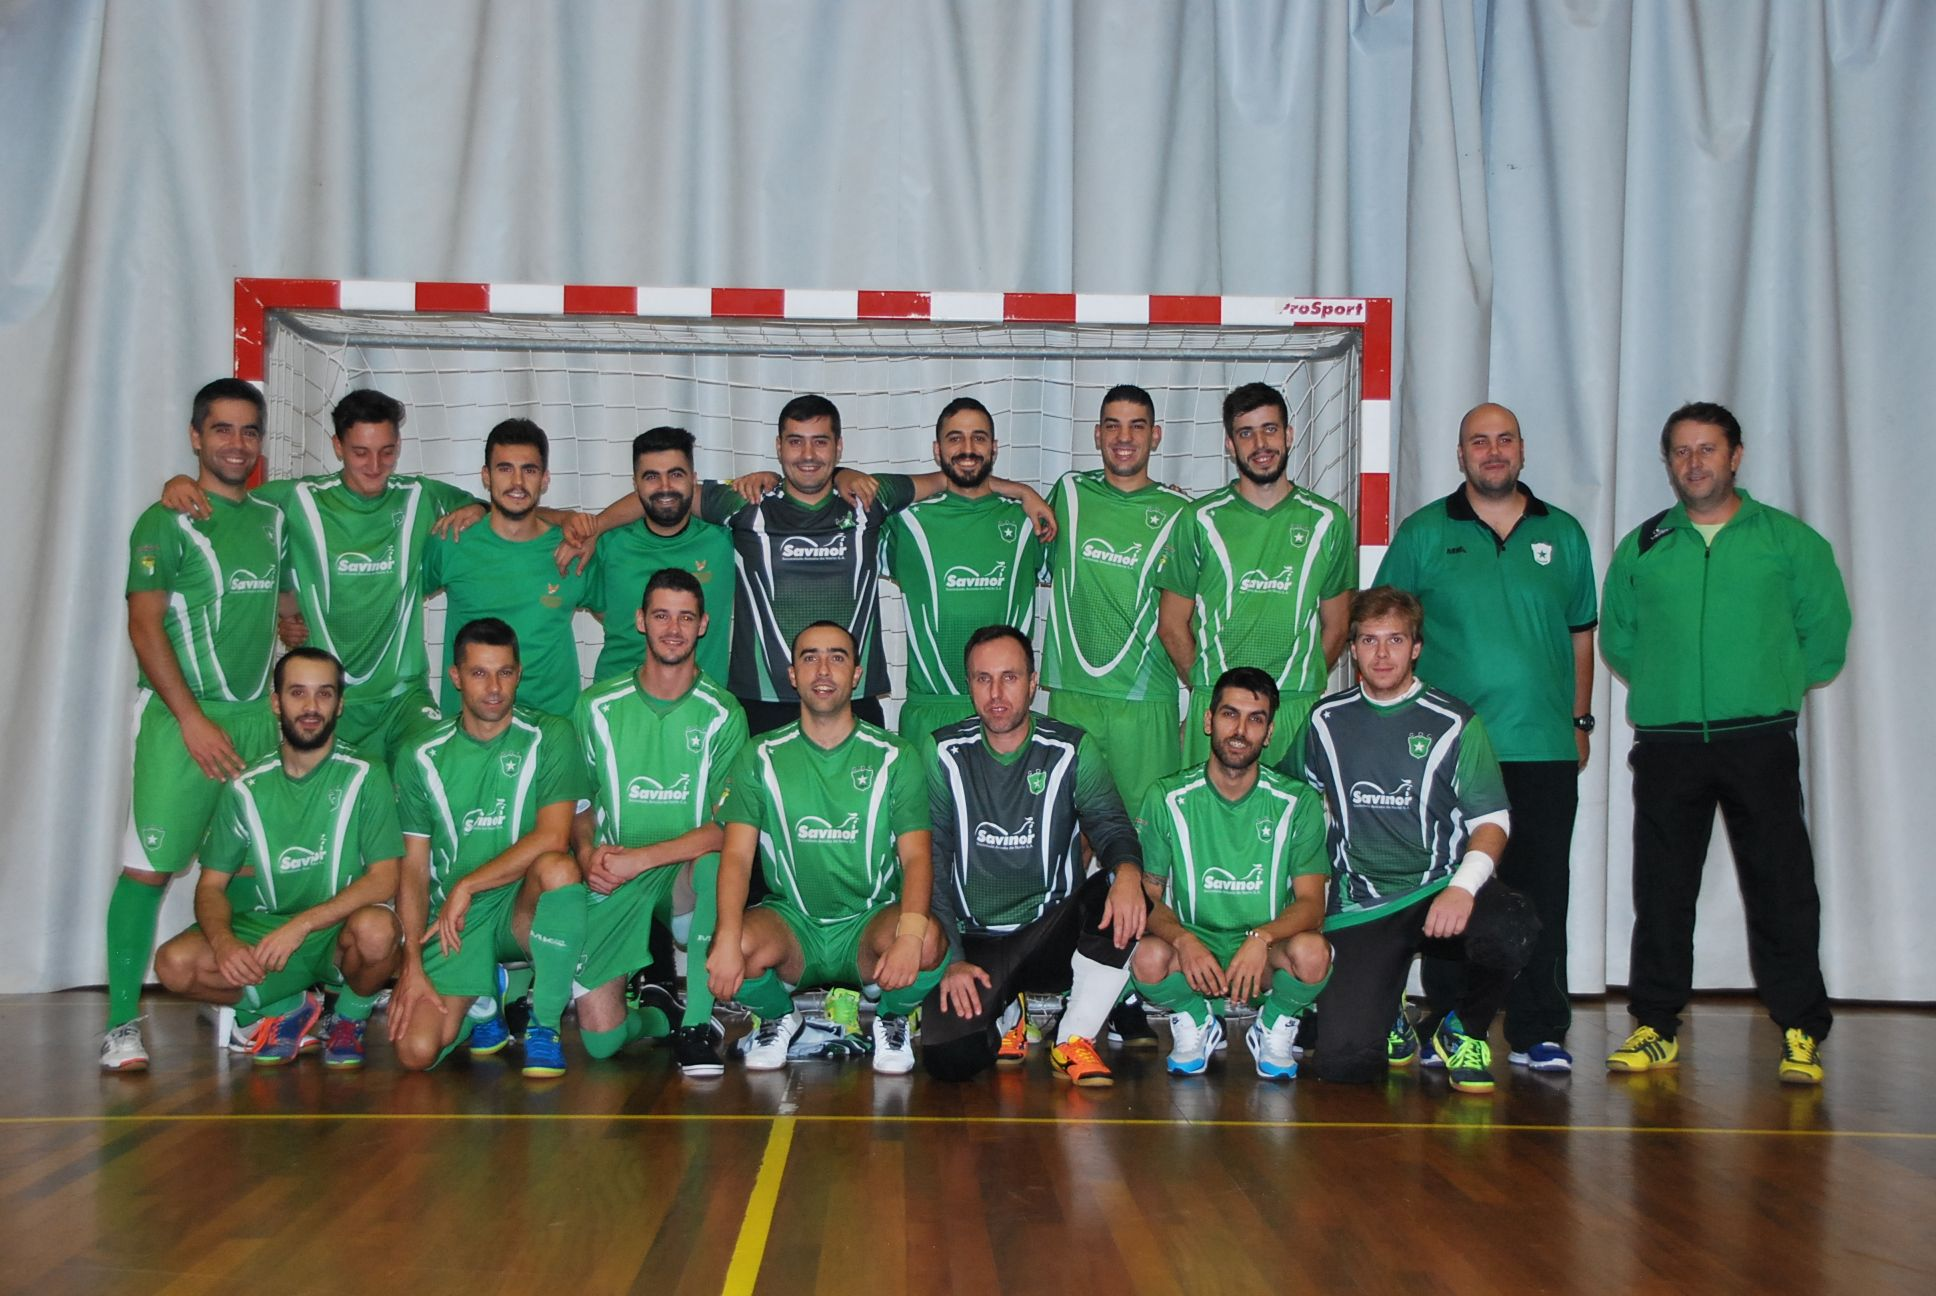 SAVINOR supports Covelas Sports Group's Futsal